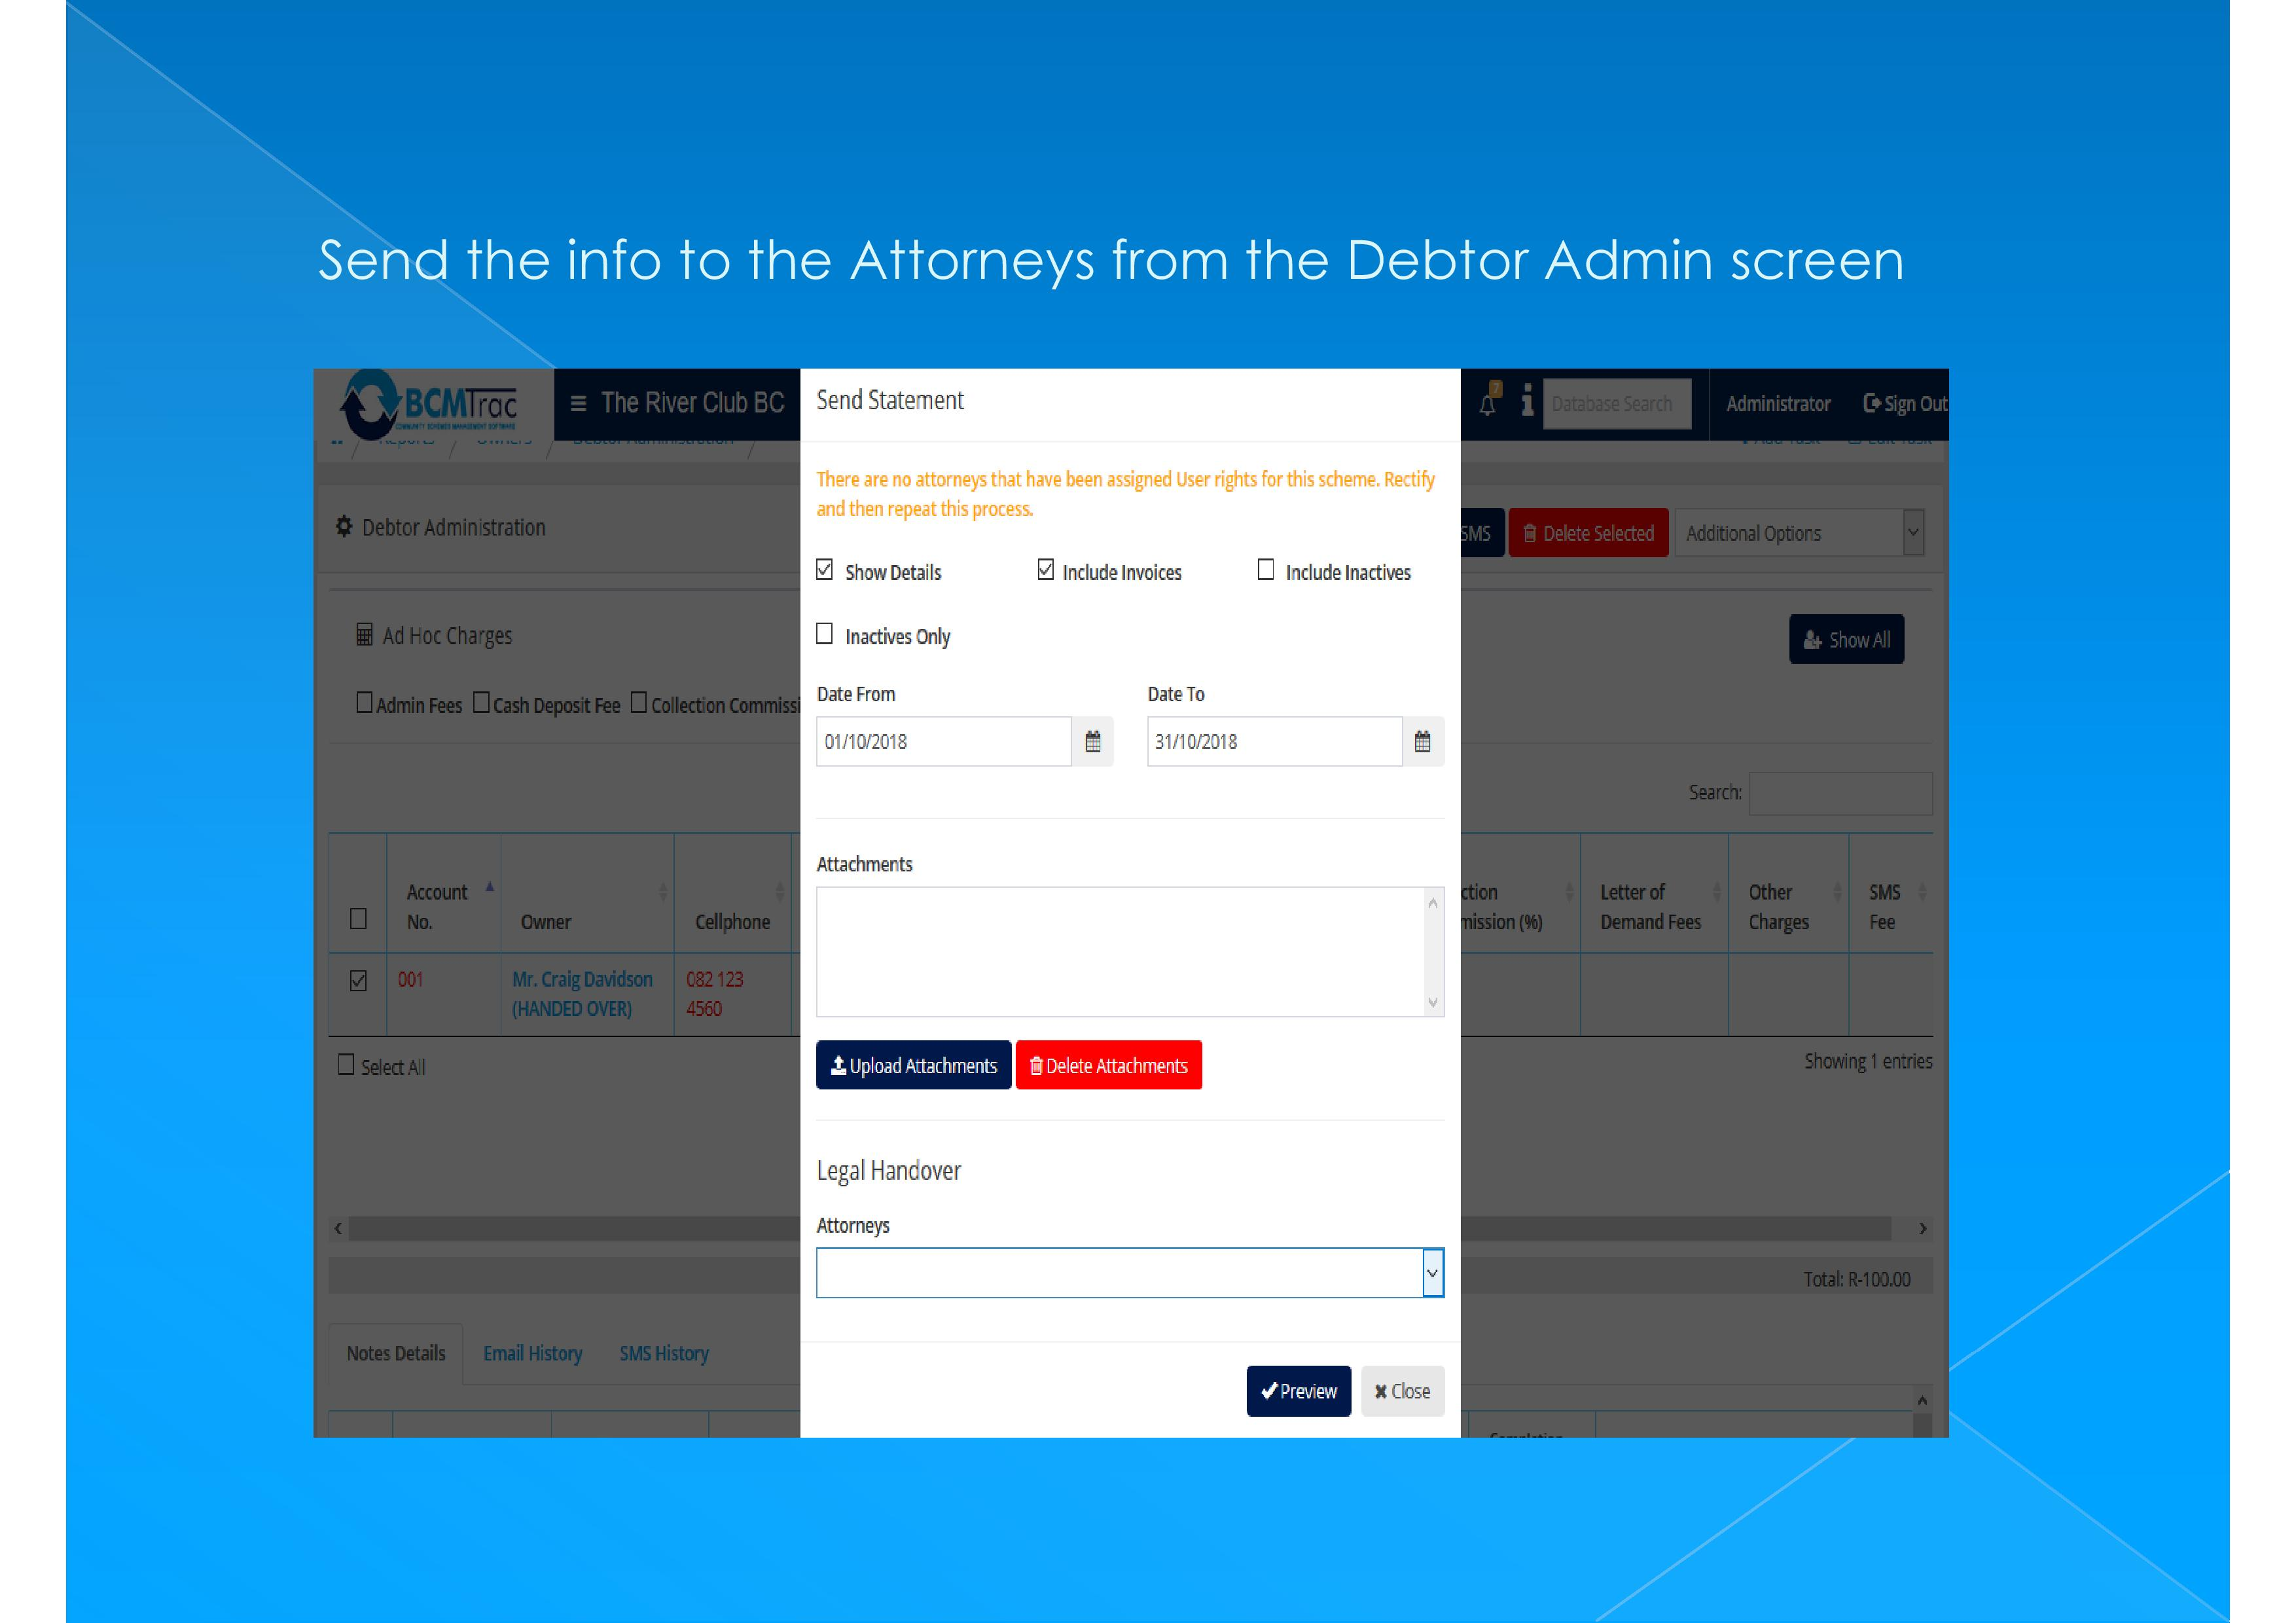 Email the details to the Attorney with one click.